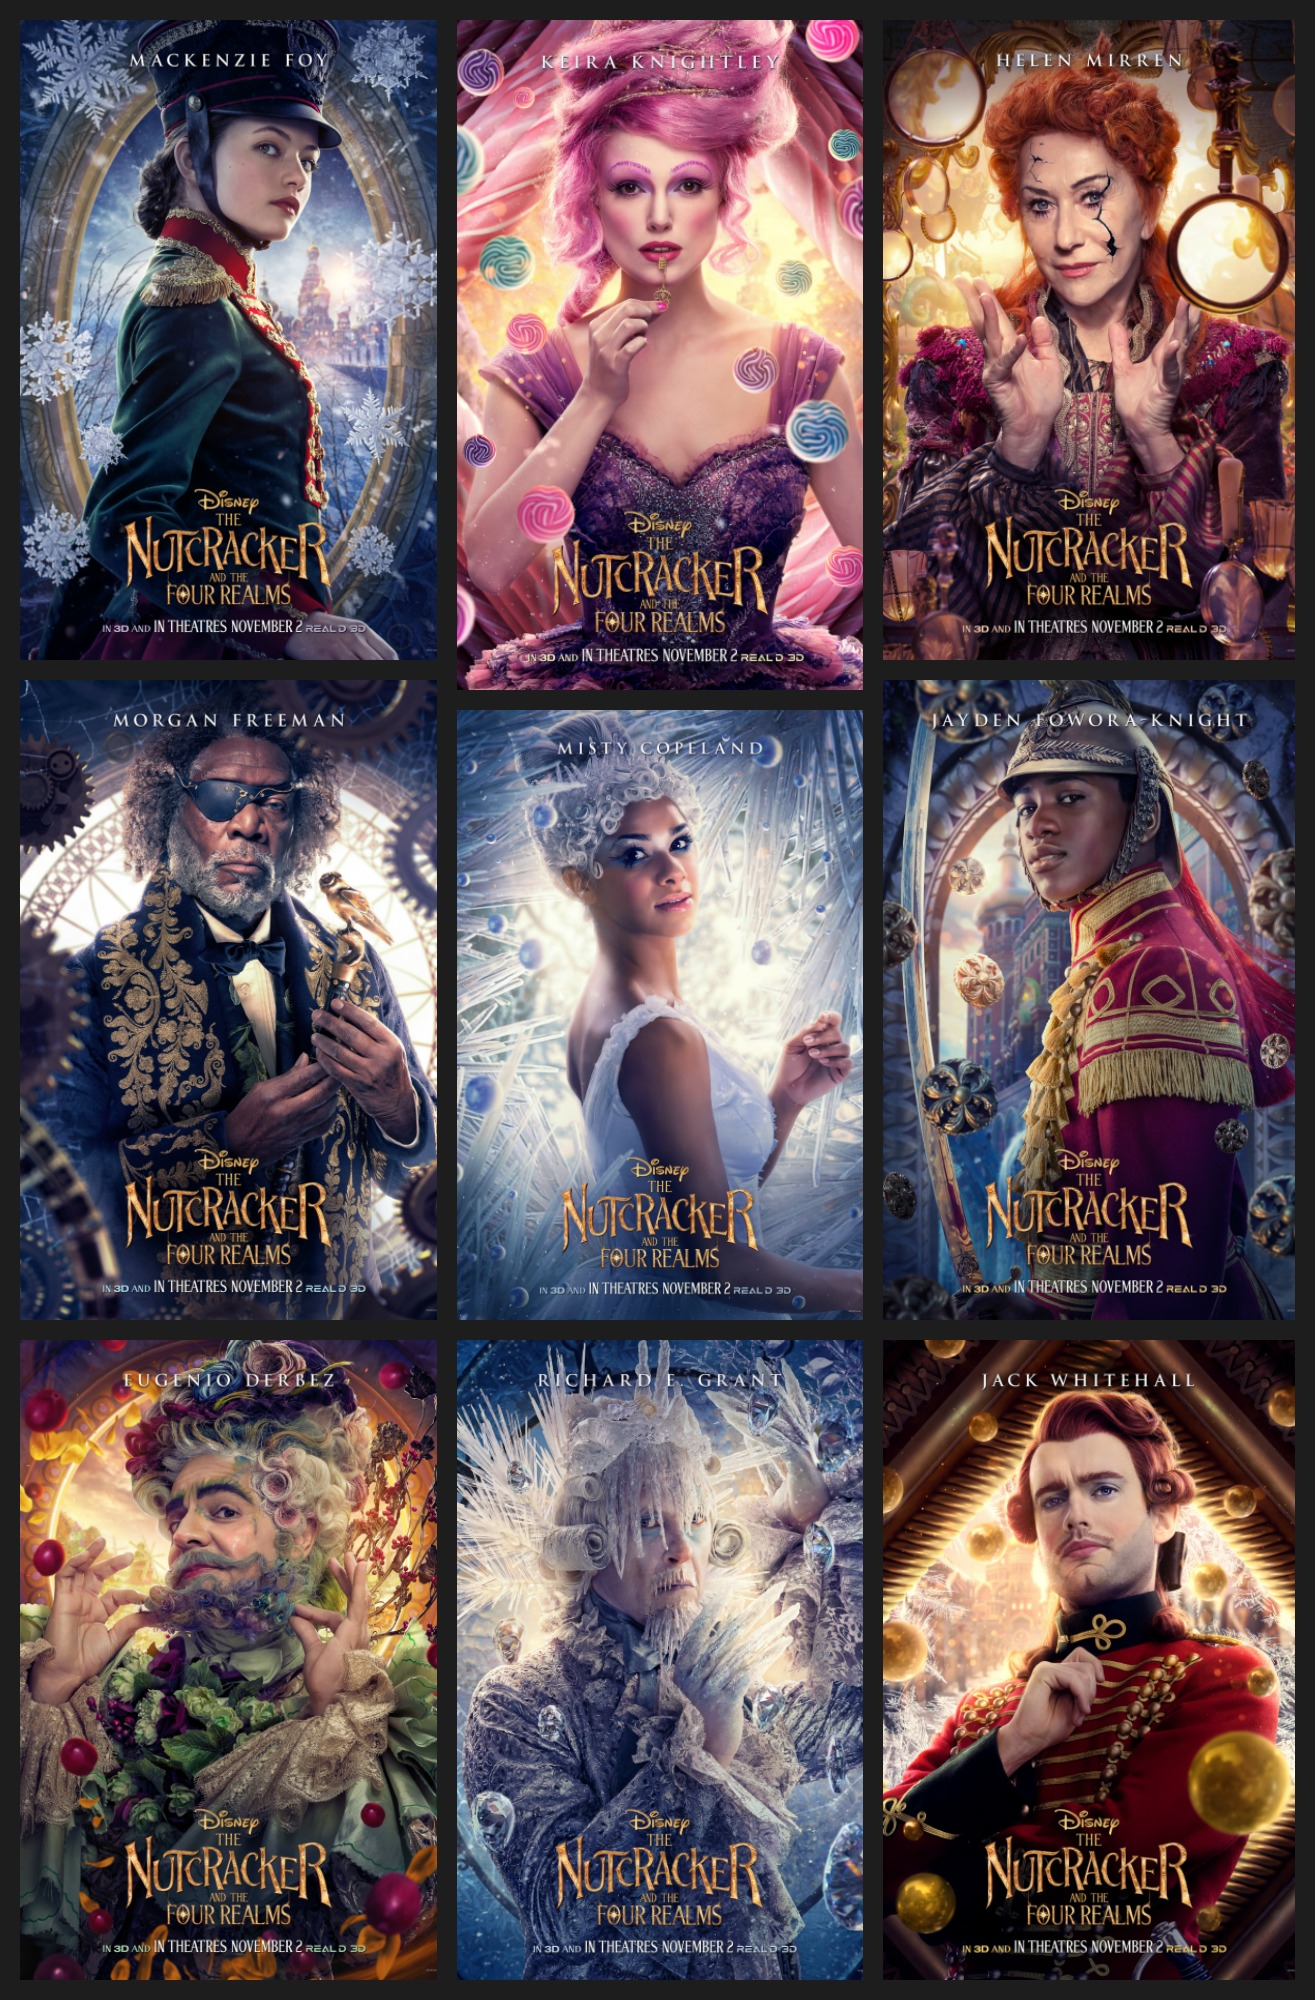 Character Posters The Nutcracker and the Four Realms